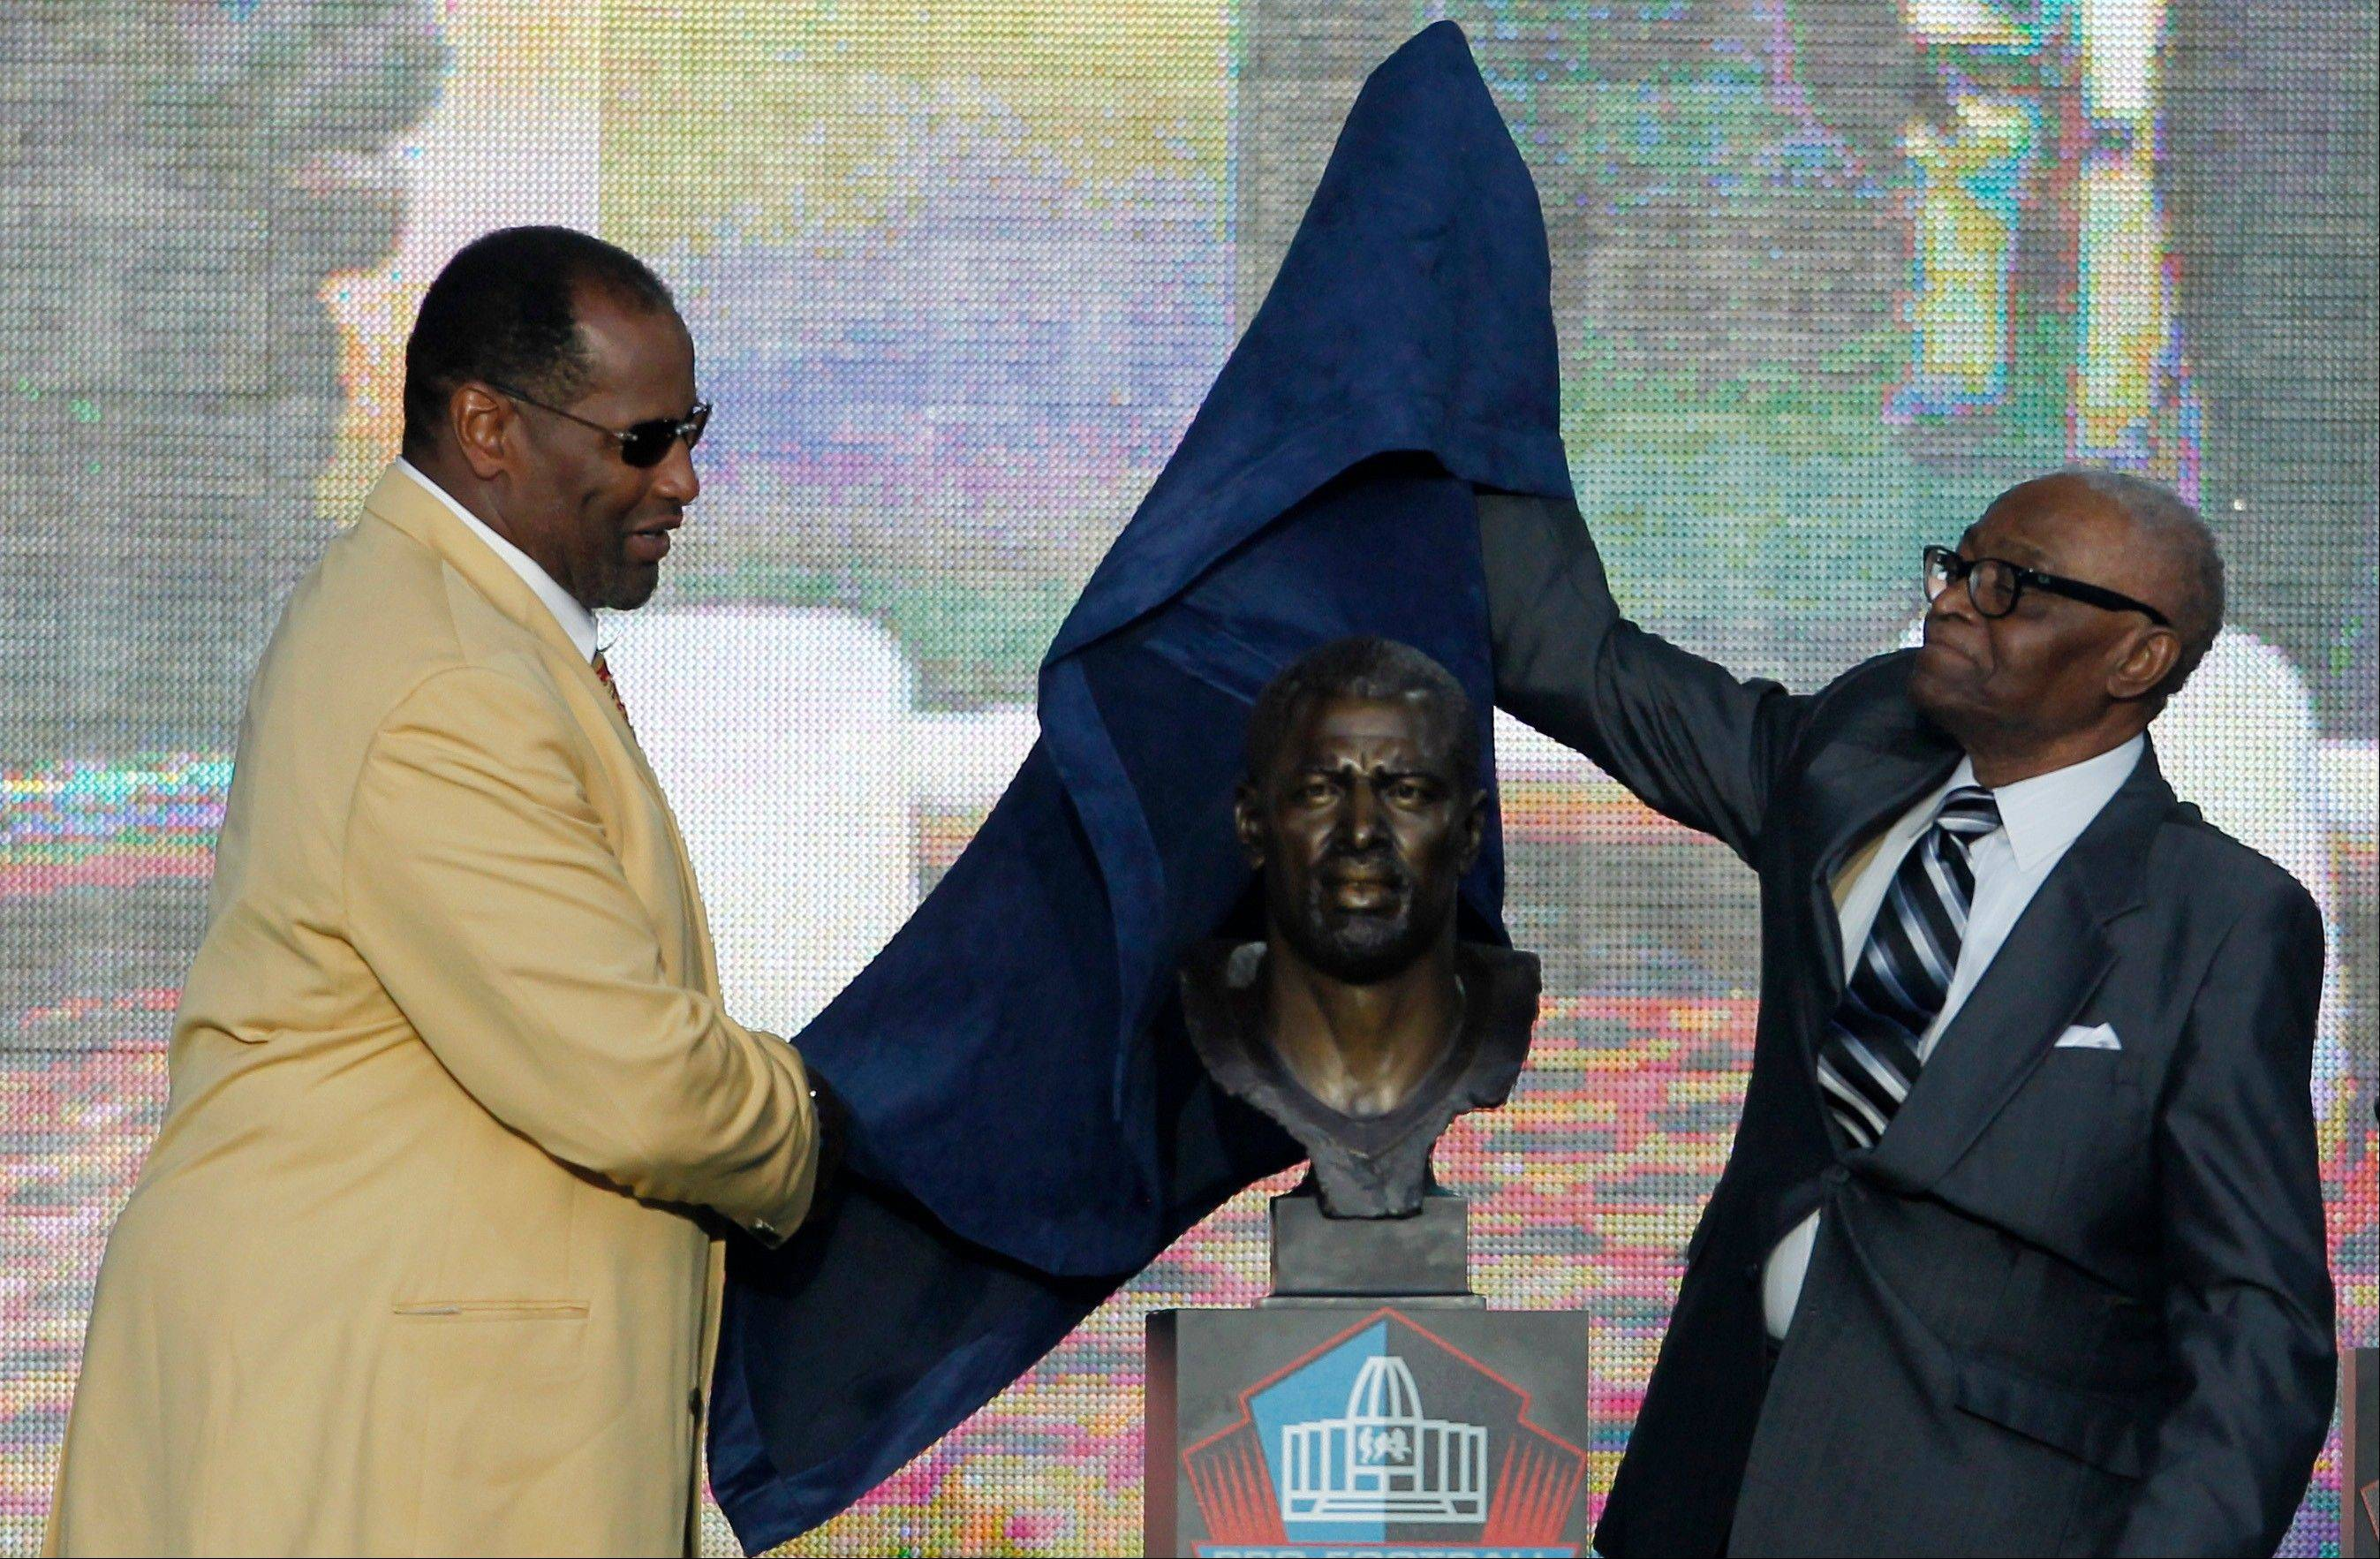 Richard Dent, left, looks on as his presenter, Joe Gilliam, unveils a bust of Dent during Dent's induction ceremony at the Pro Football Hall of Fame on Aug. 6, 2011, in Canton, Ohio. Gilliam is a former Tennessee State coach.